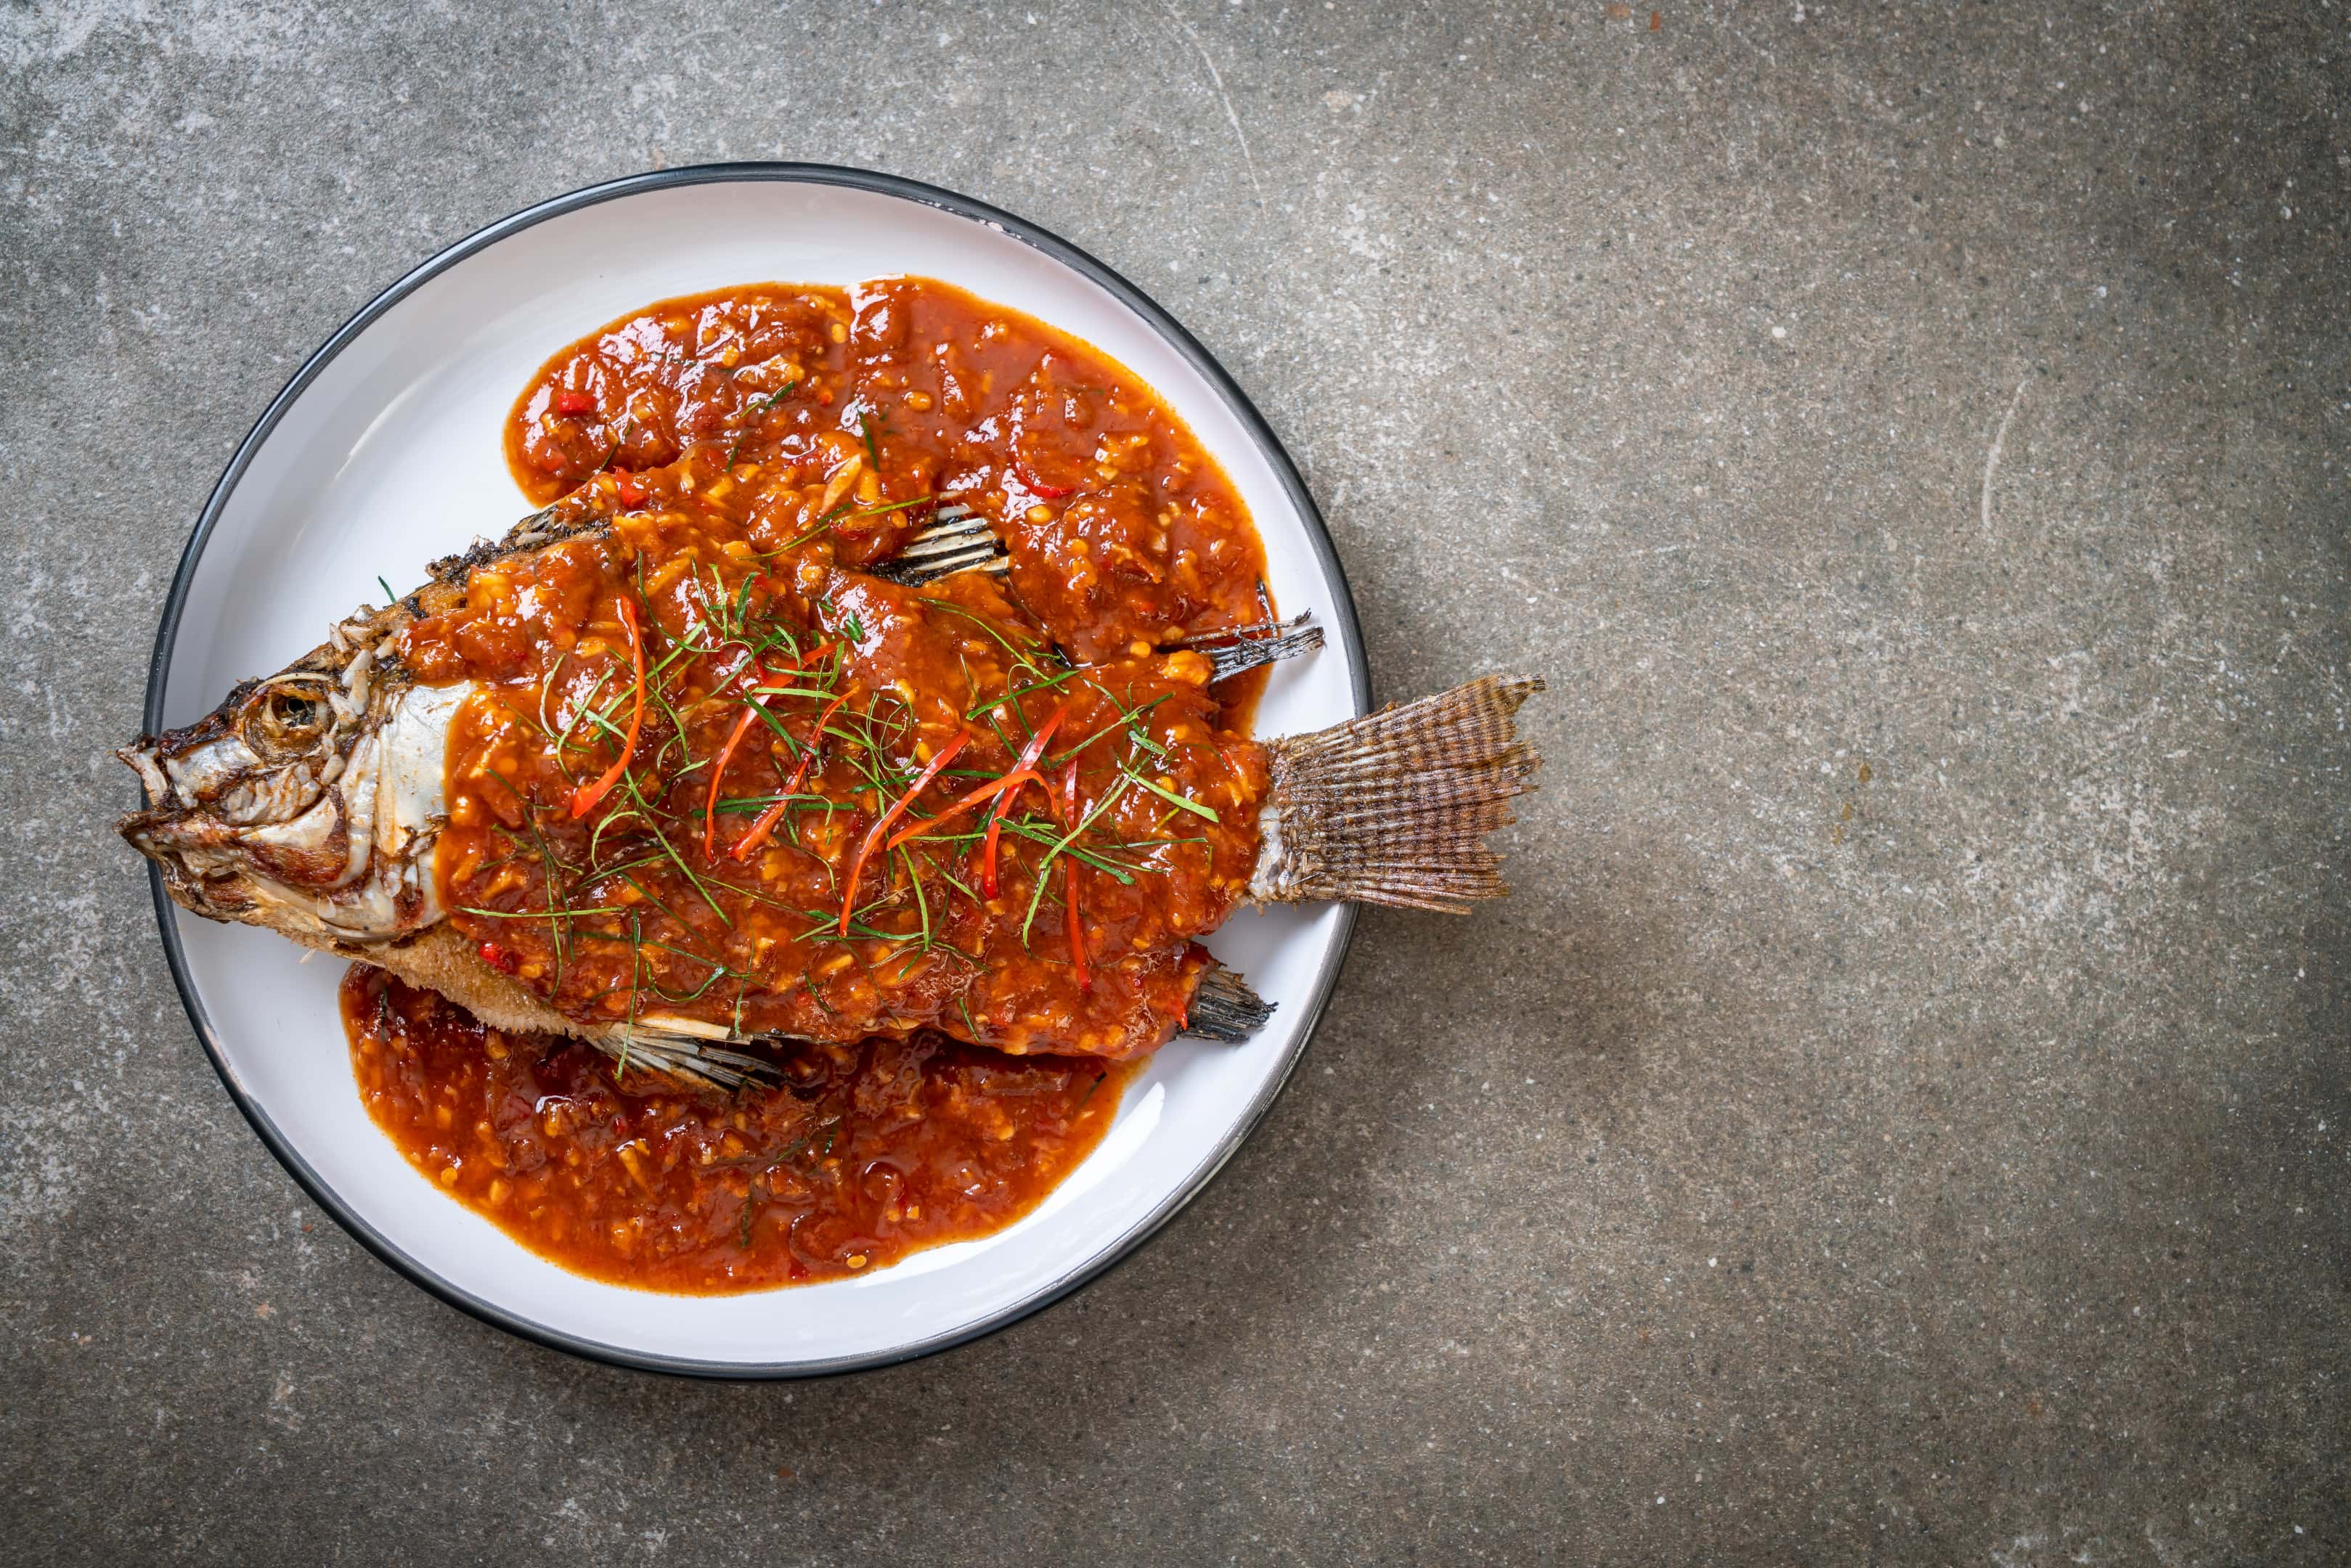 Fried fish with xo sauce